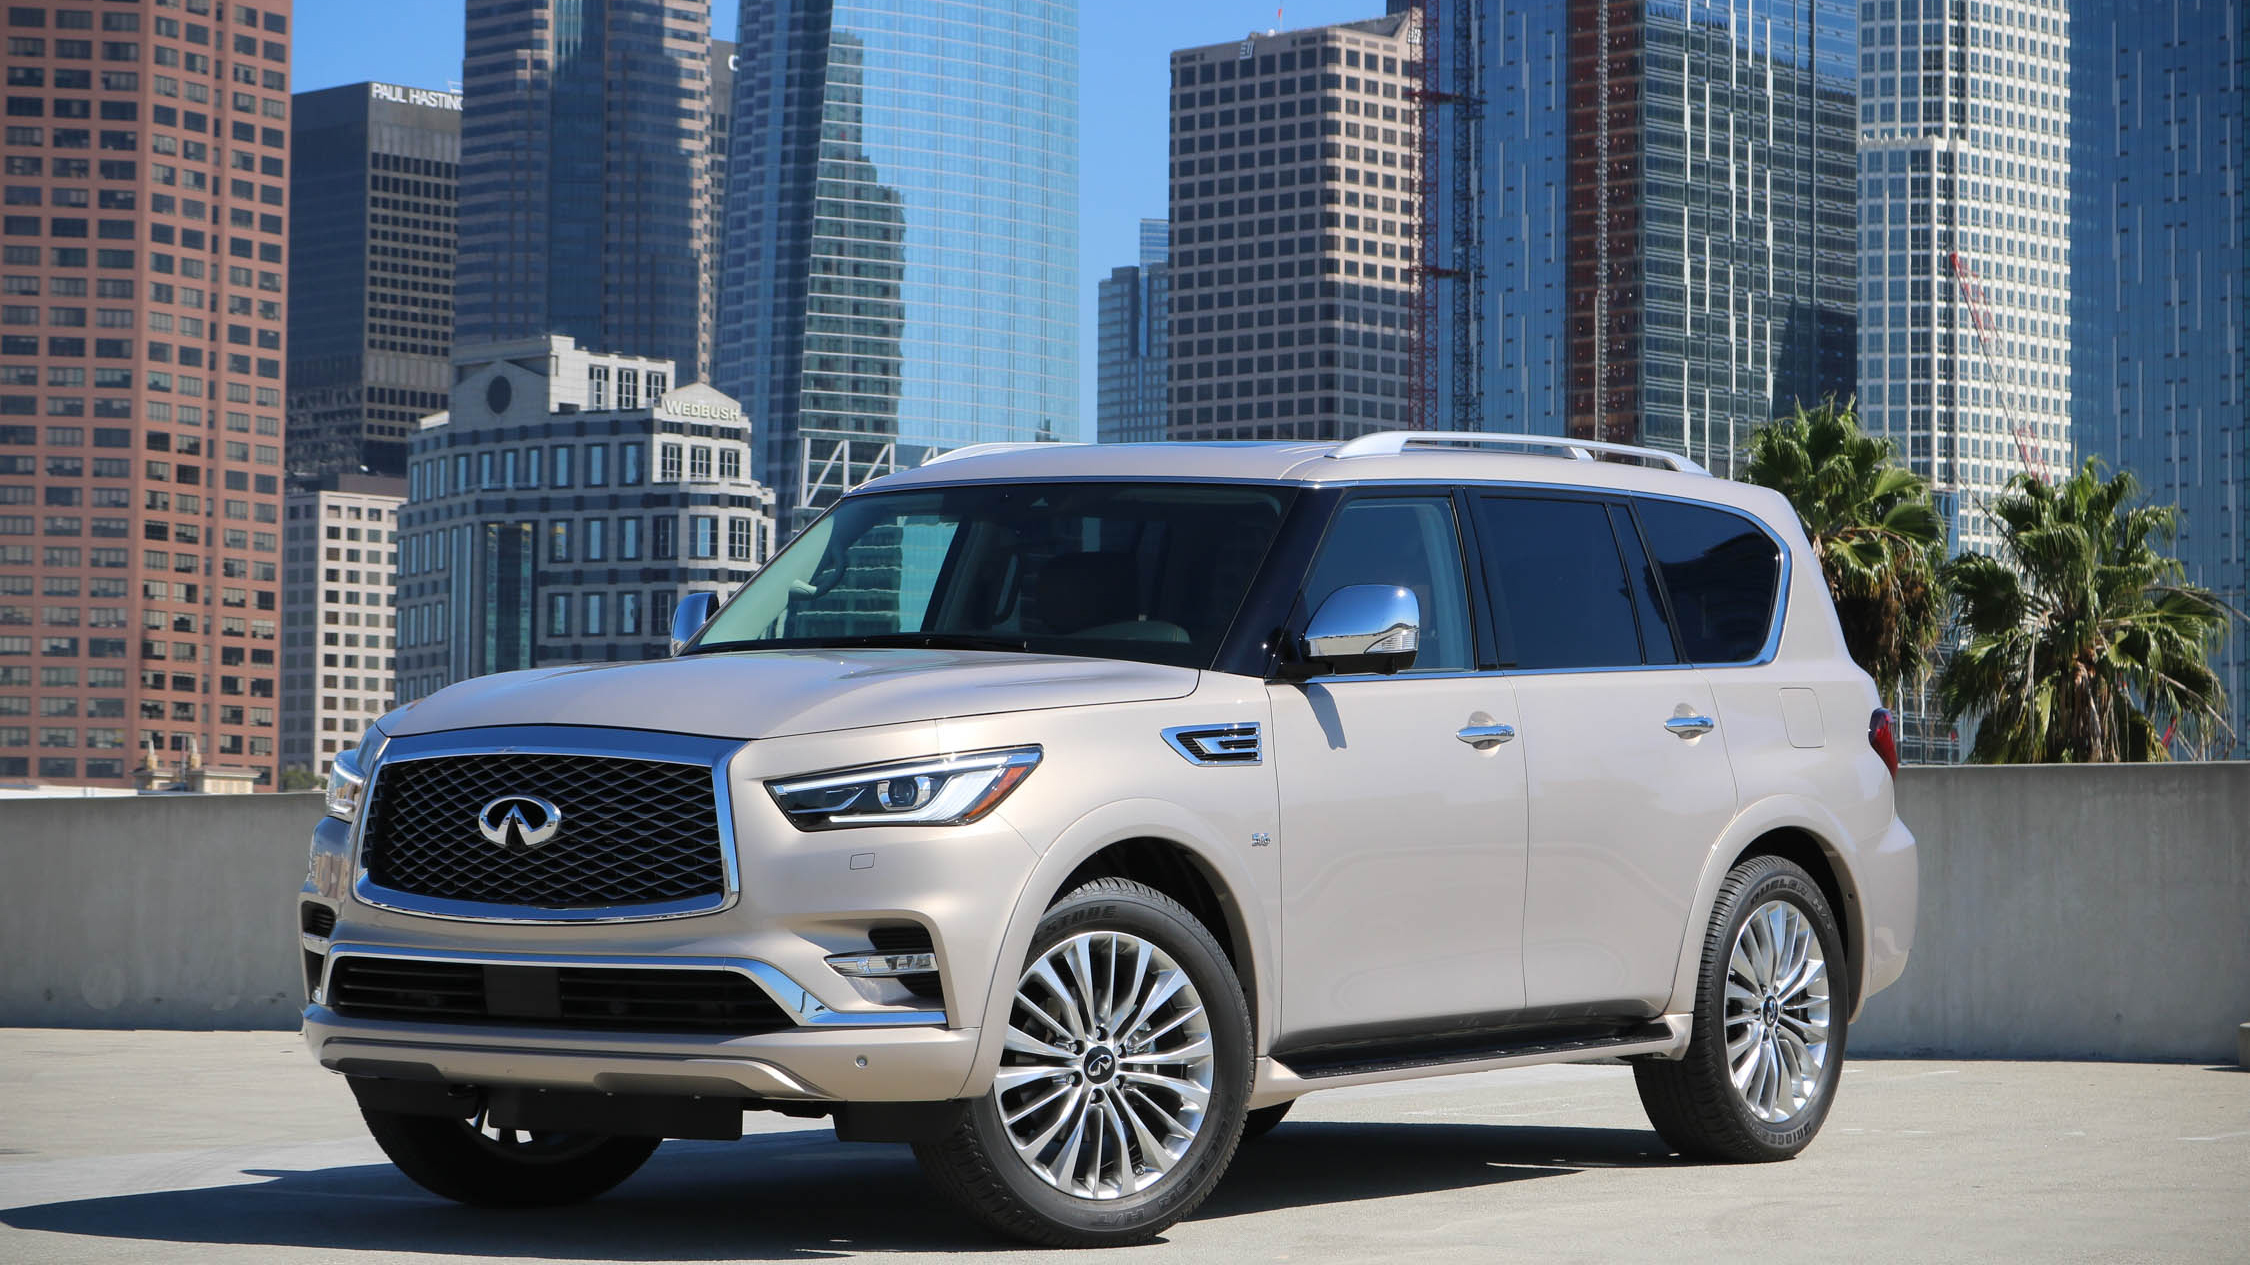 msrp photo base photos review amp features infinity specification prices infiniti reviews price suv